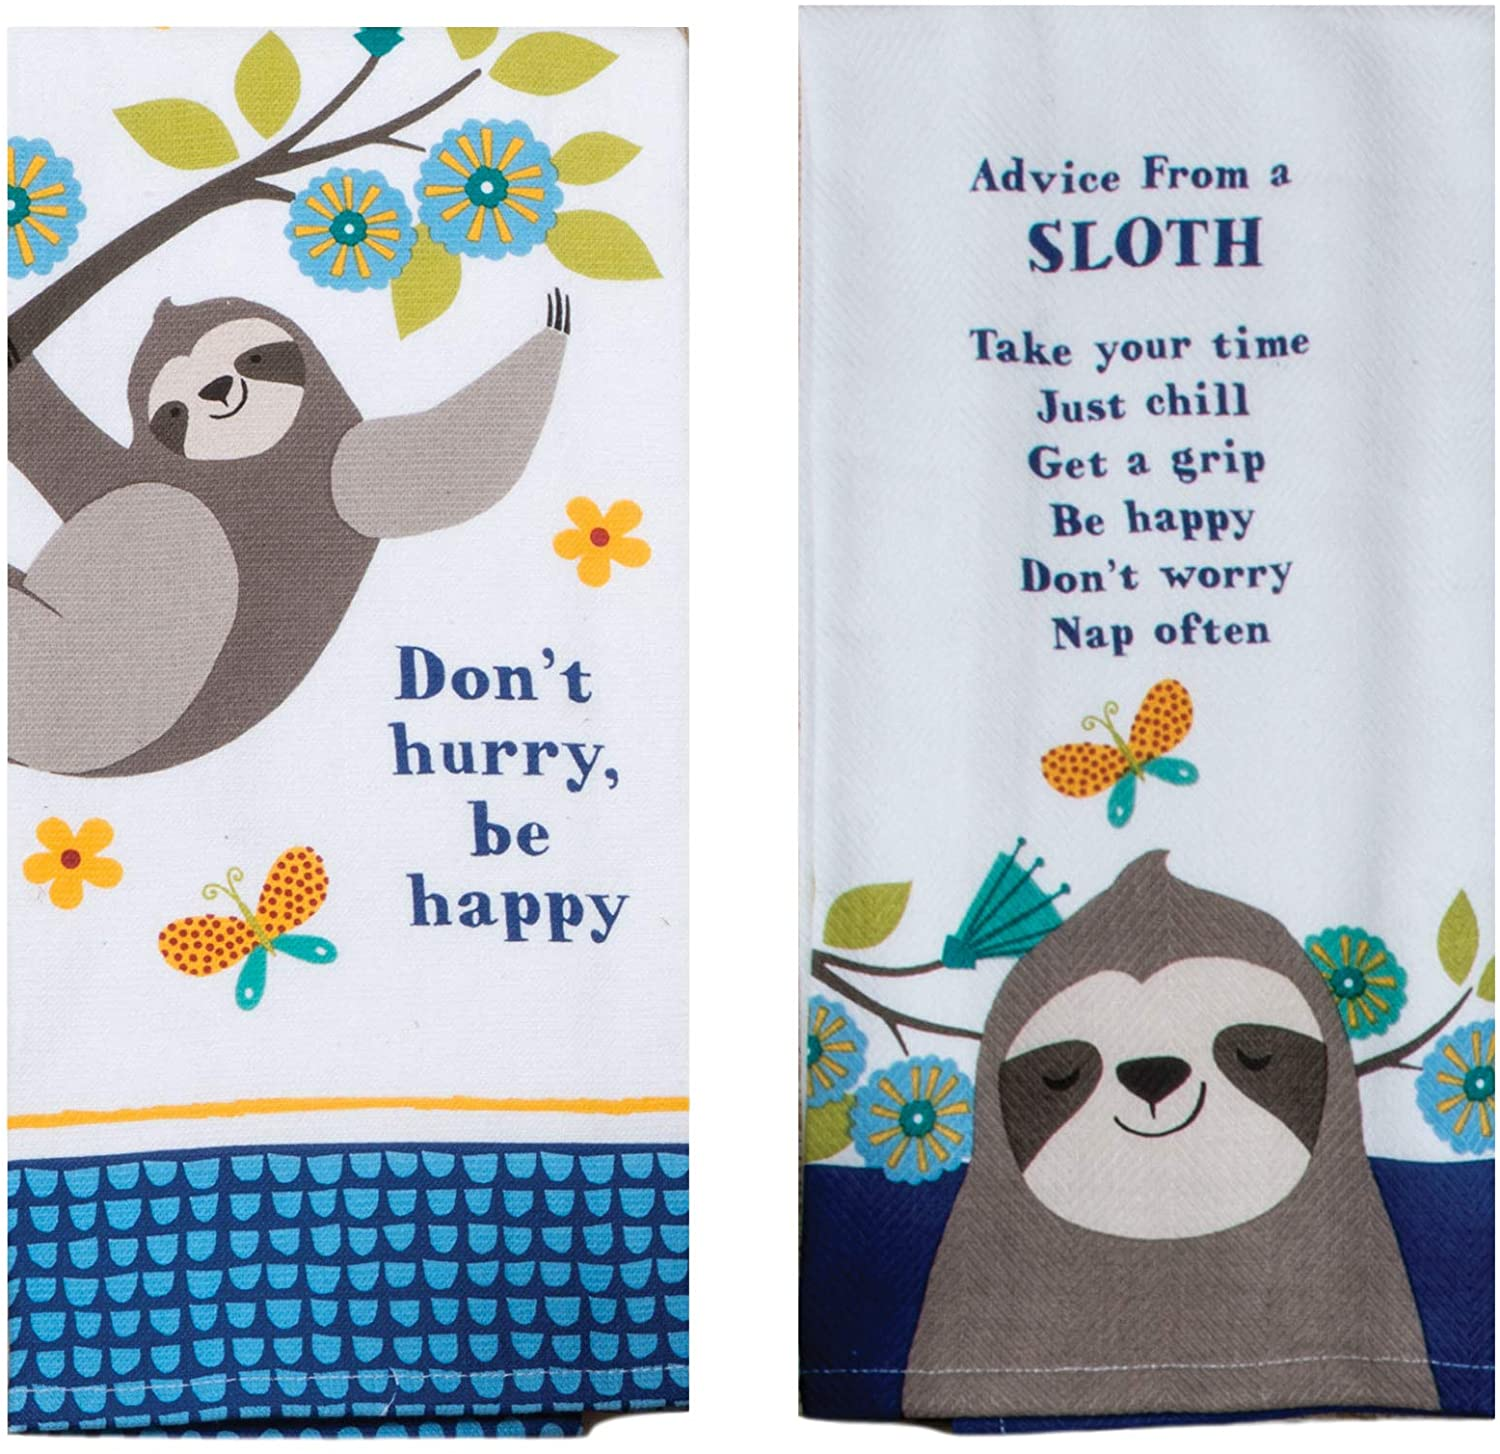 Sloth Themed Kitchen Towels | Bundled Set of 2 Dish Towels | Lessons from a Sloth - Don't Hurry Be Happy | Kay Dee Designs